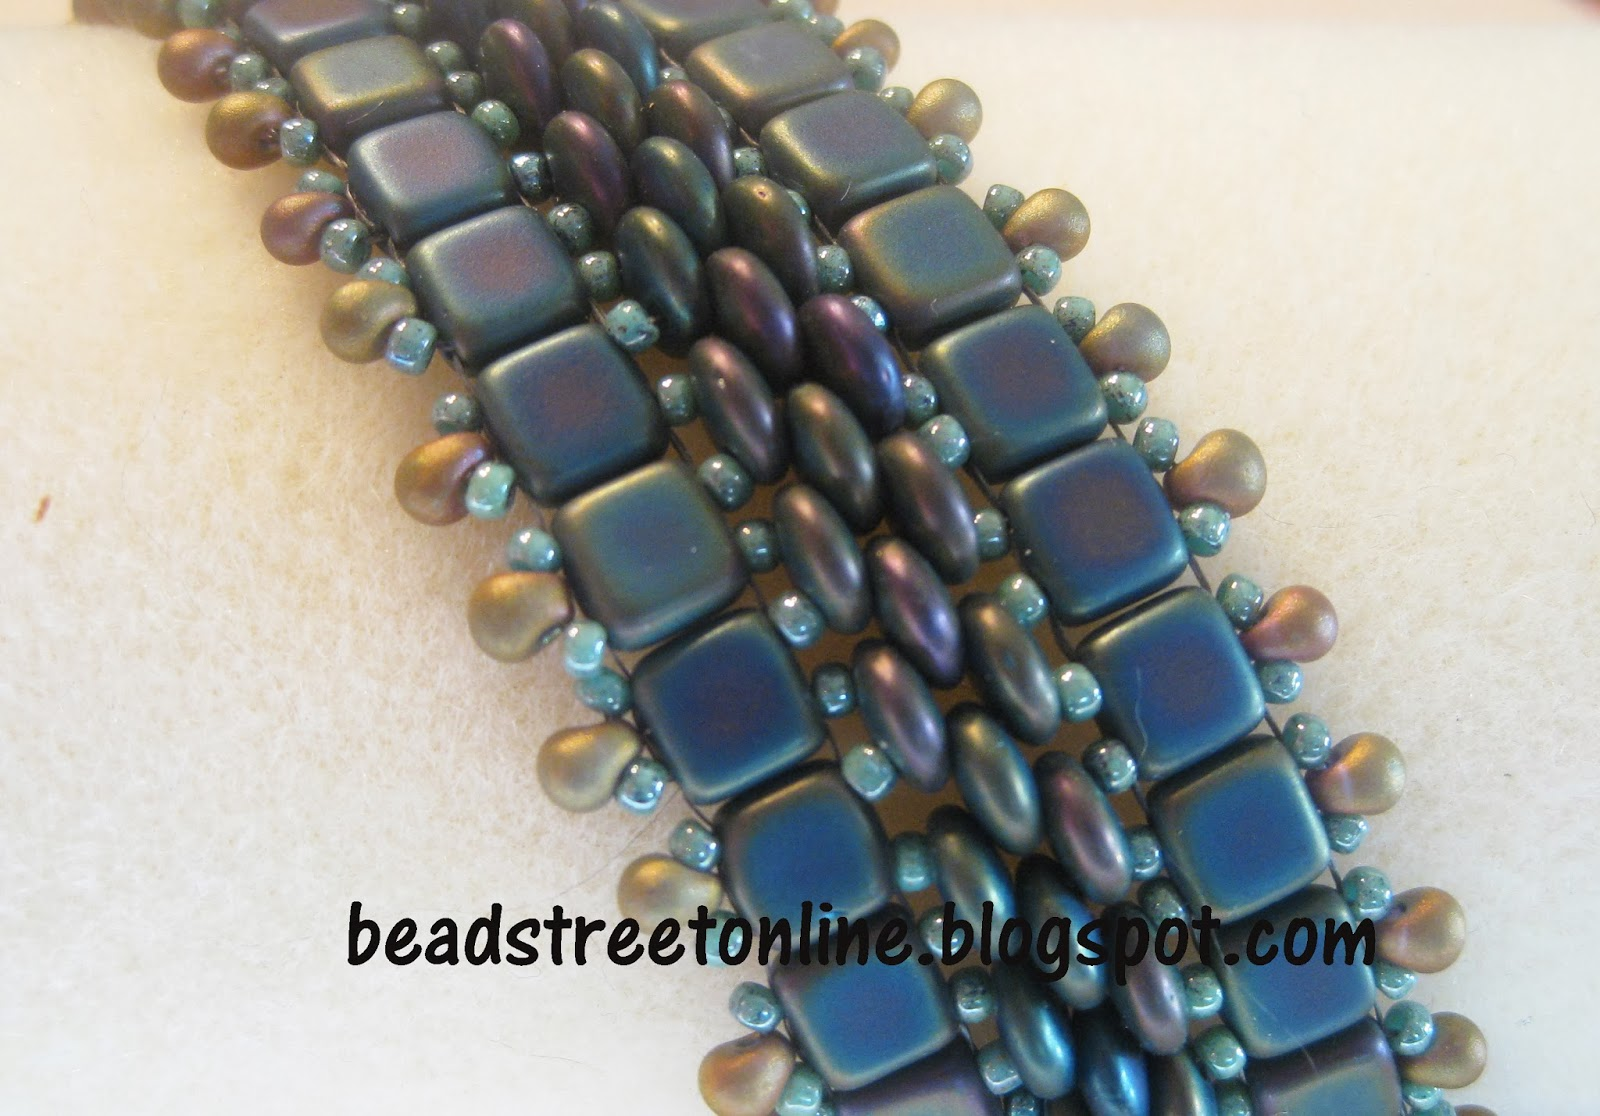 bead bead november classes